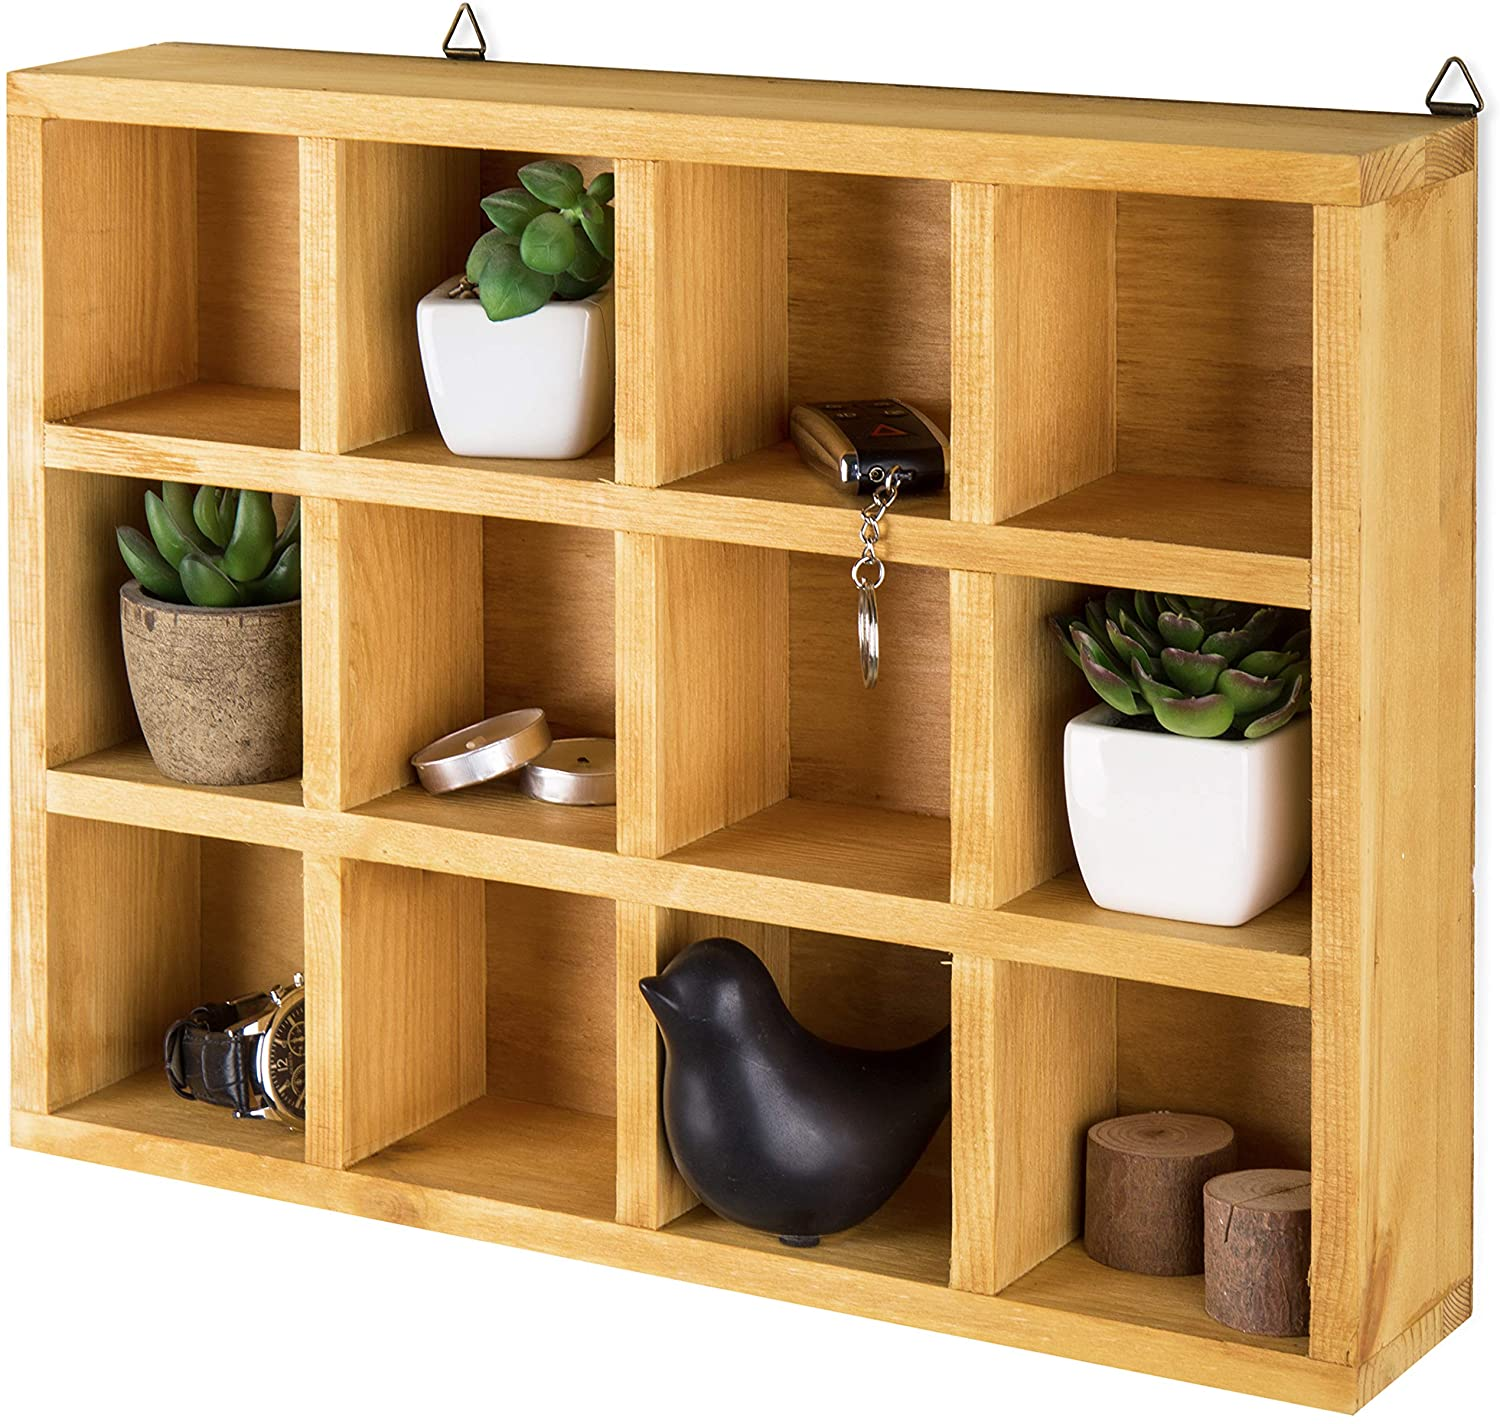 MyGift Wooden Freestanding/Wall Mounted 12 Compartment Shadow Box/Display Shelf Shelving Unit